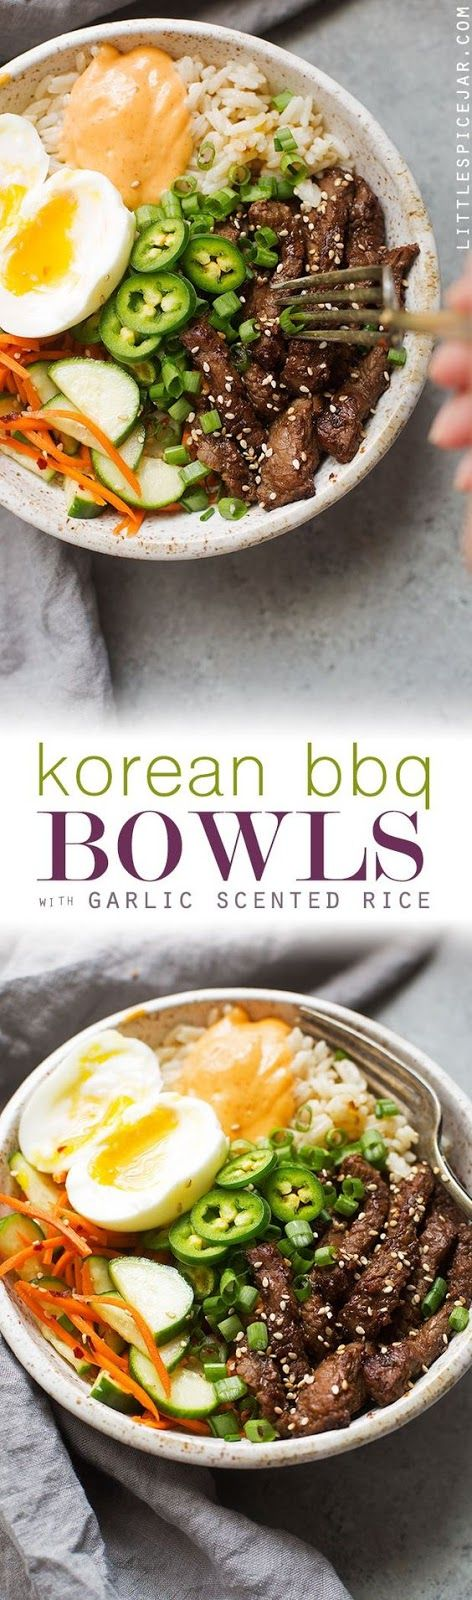 KOREAN BBQ BOWLS WITH GARLIC SCENTED RICE | Cake And Food Recipe